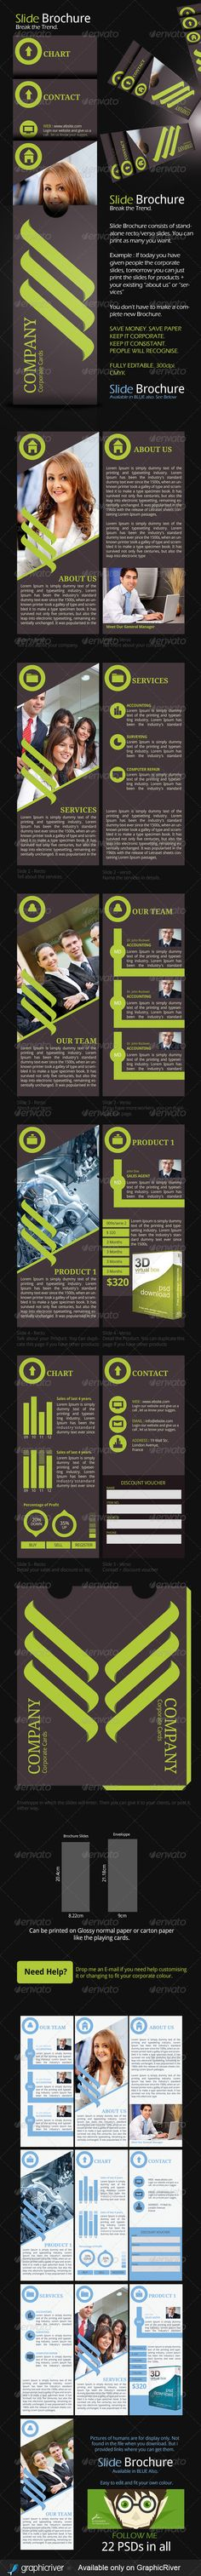 Spa Brochure Template Design tools Pinterest Brochure - spa brochure